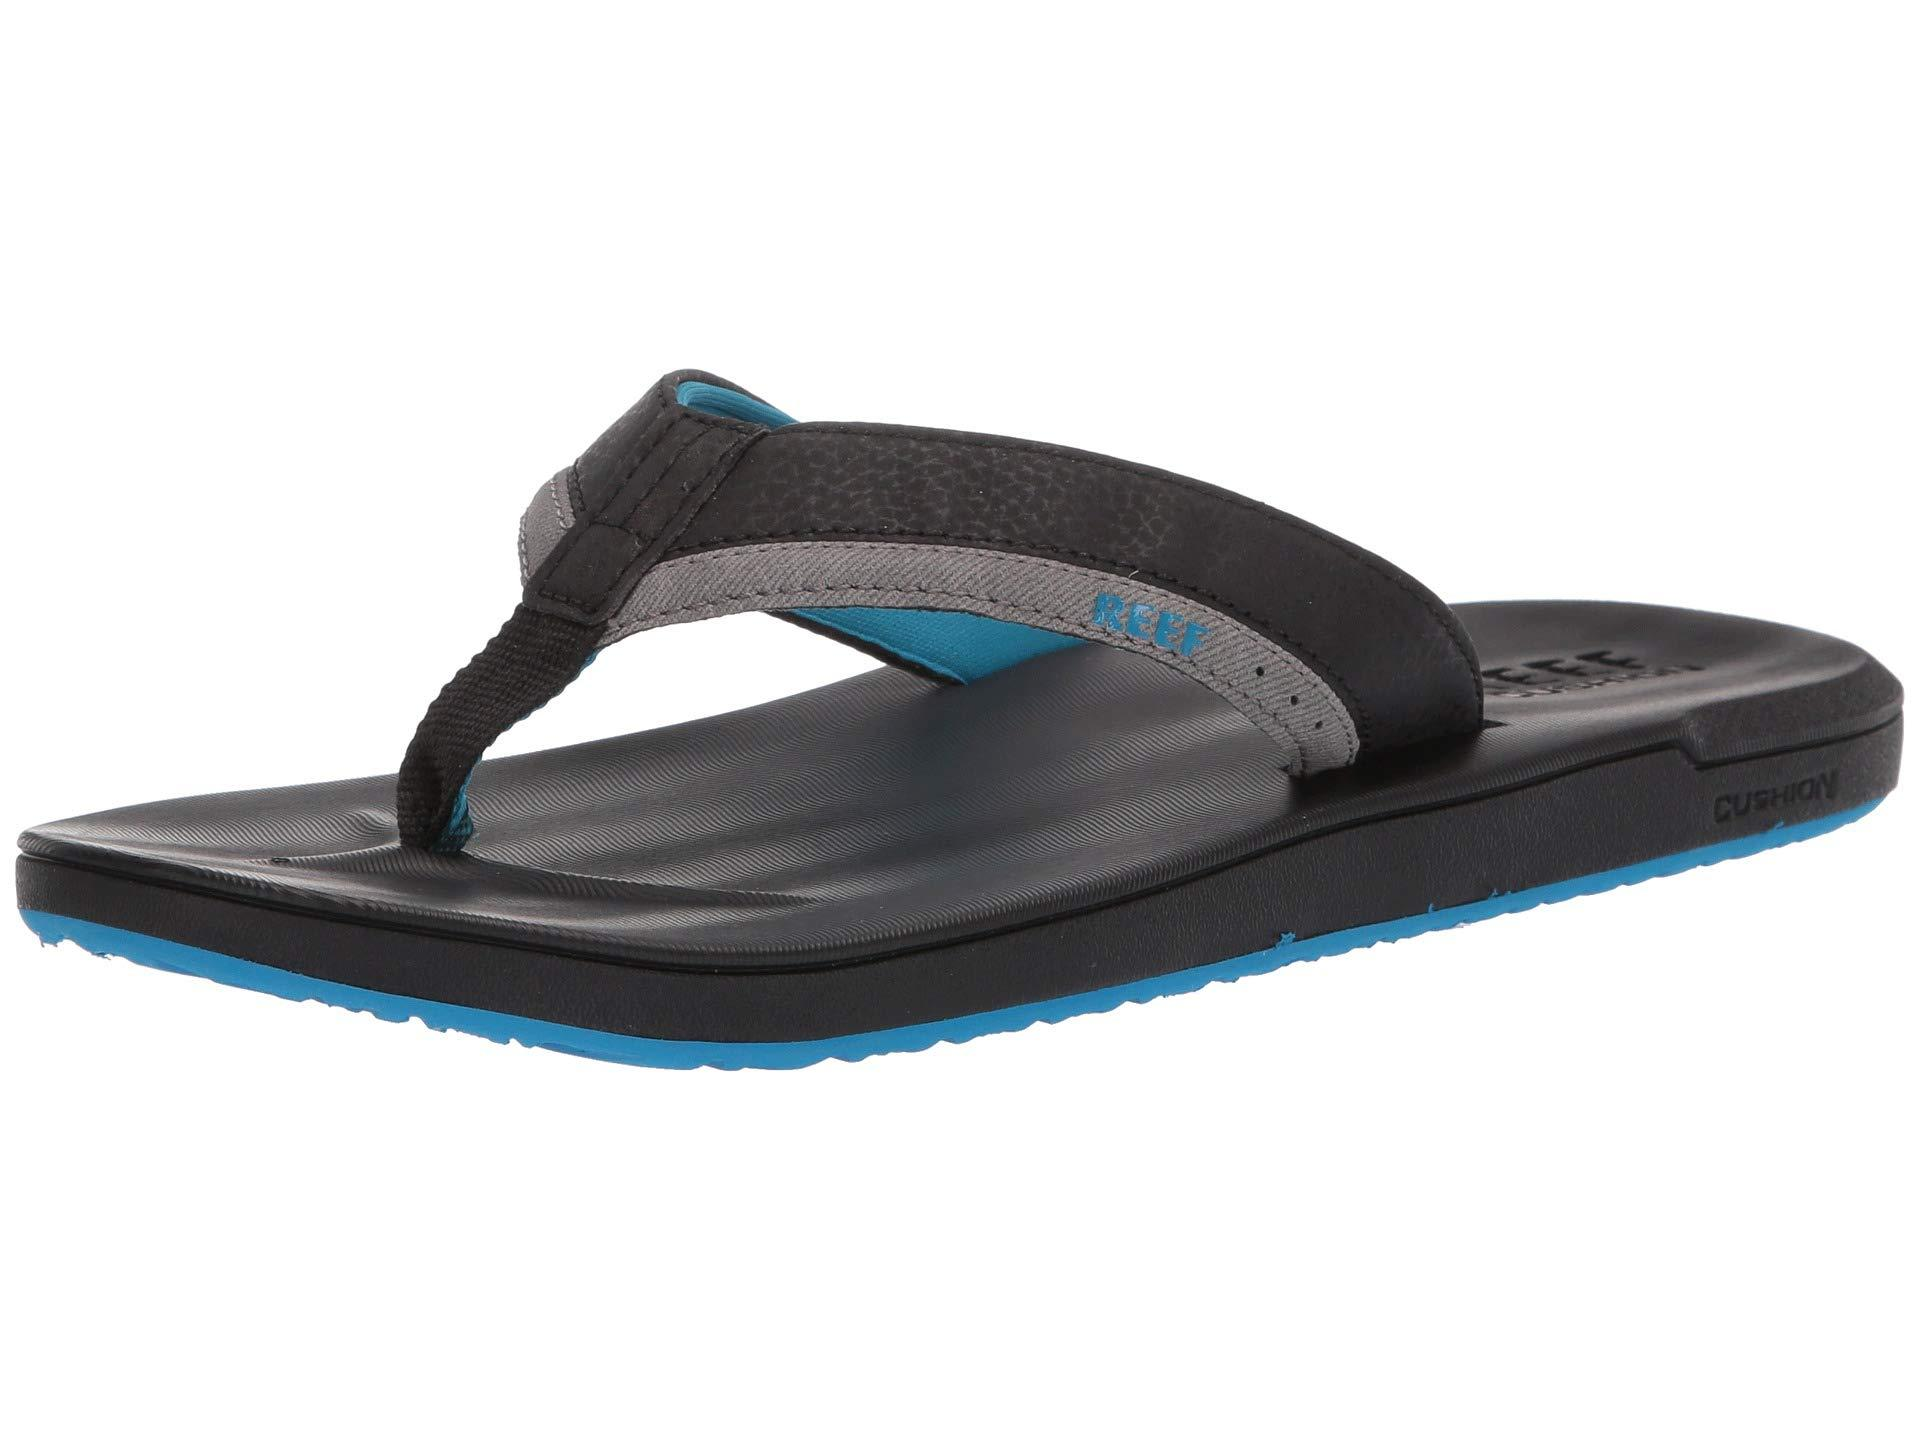 80e88f2b1 Lyst - Reef Contoured Cushion (brown) Men s Sandals in Gray for Men